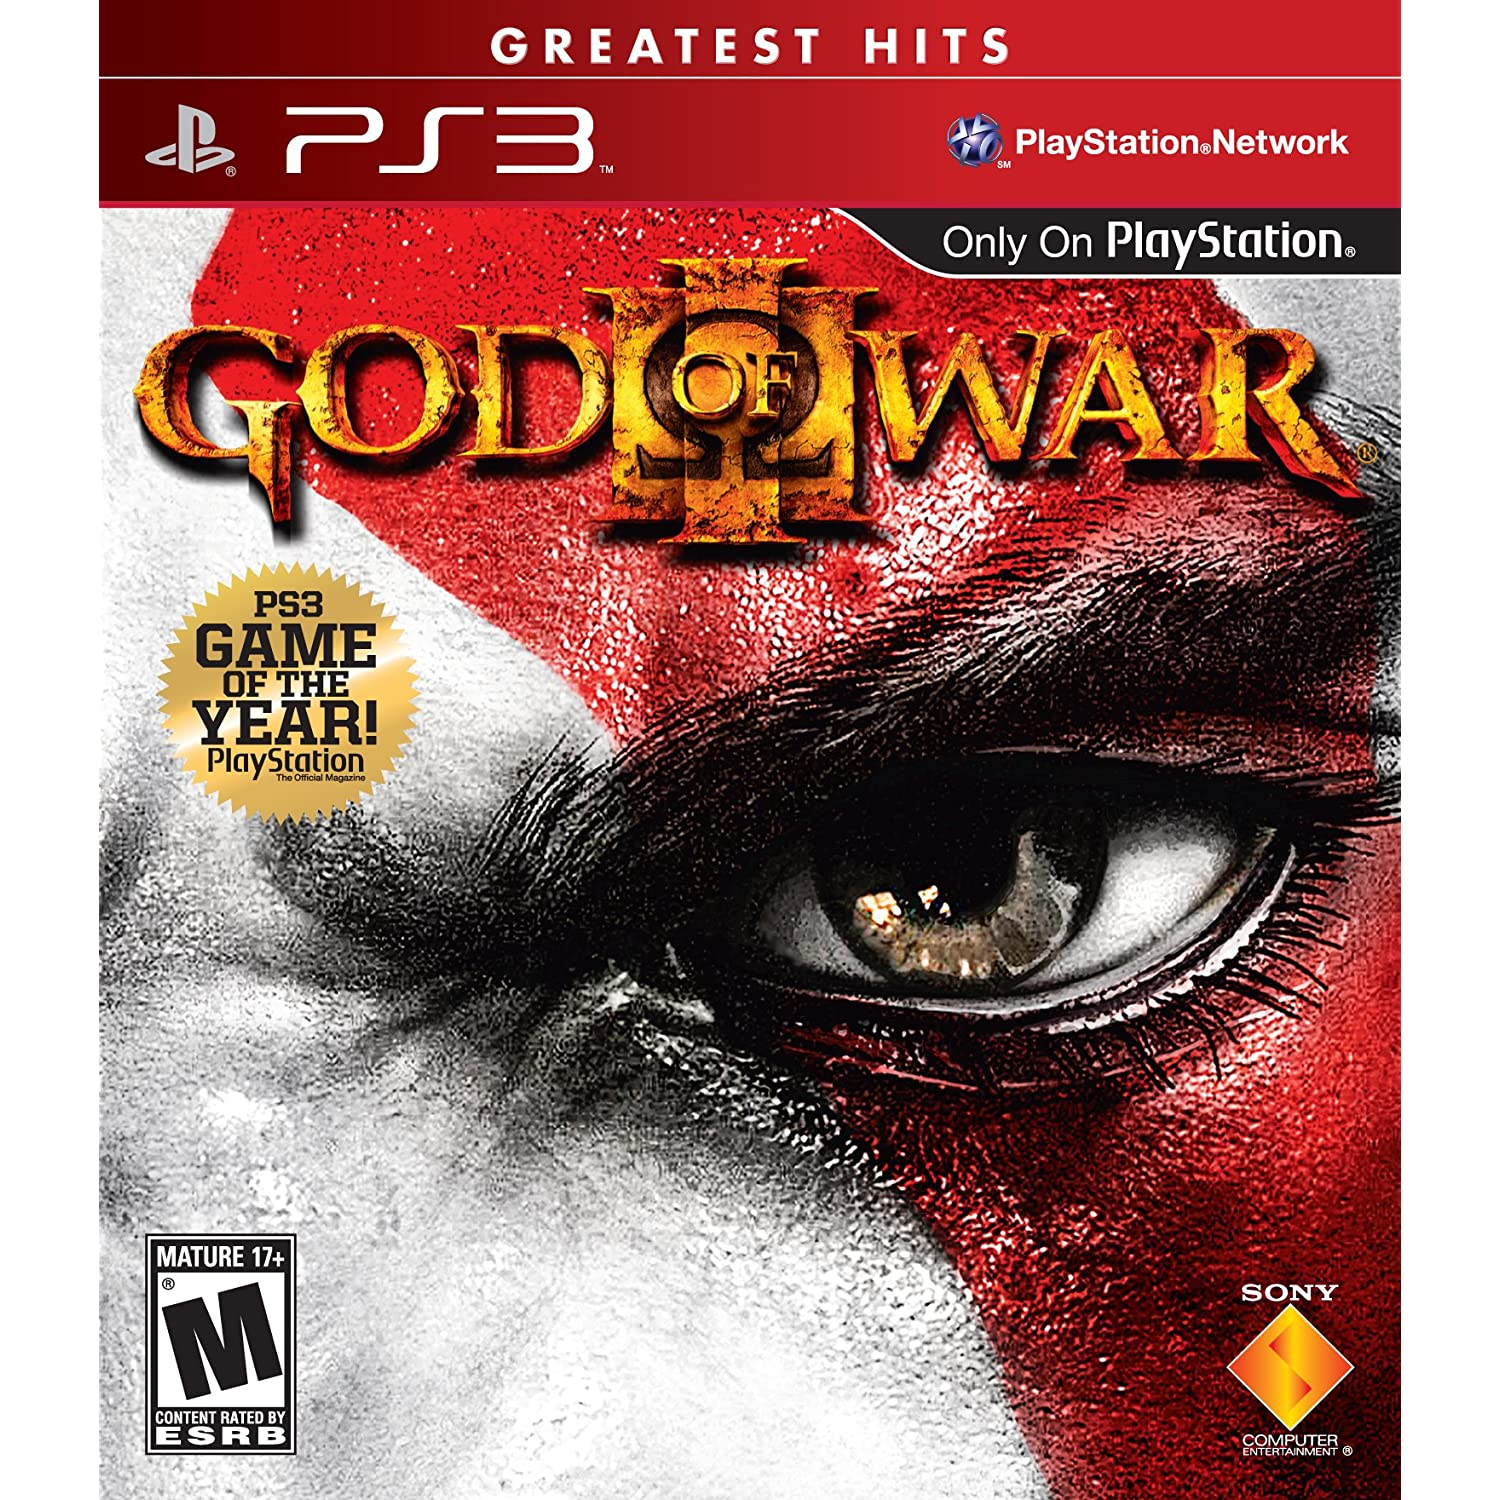 Game, Games, Video Game, Video Games, PlayStation 3, God of War, Kratos, Ps3 Exclusive, Ps3 Game, Greek Mythology, Blu-ray, Bluray, God of War 3